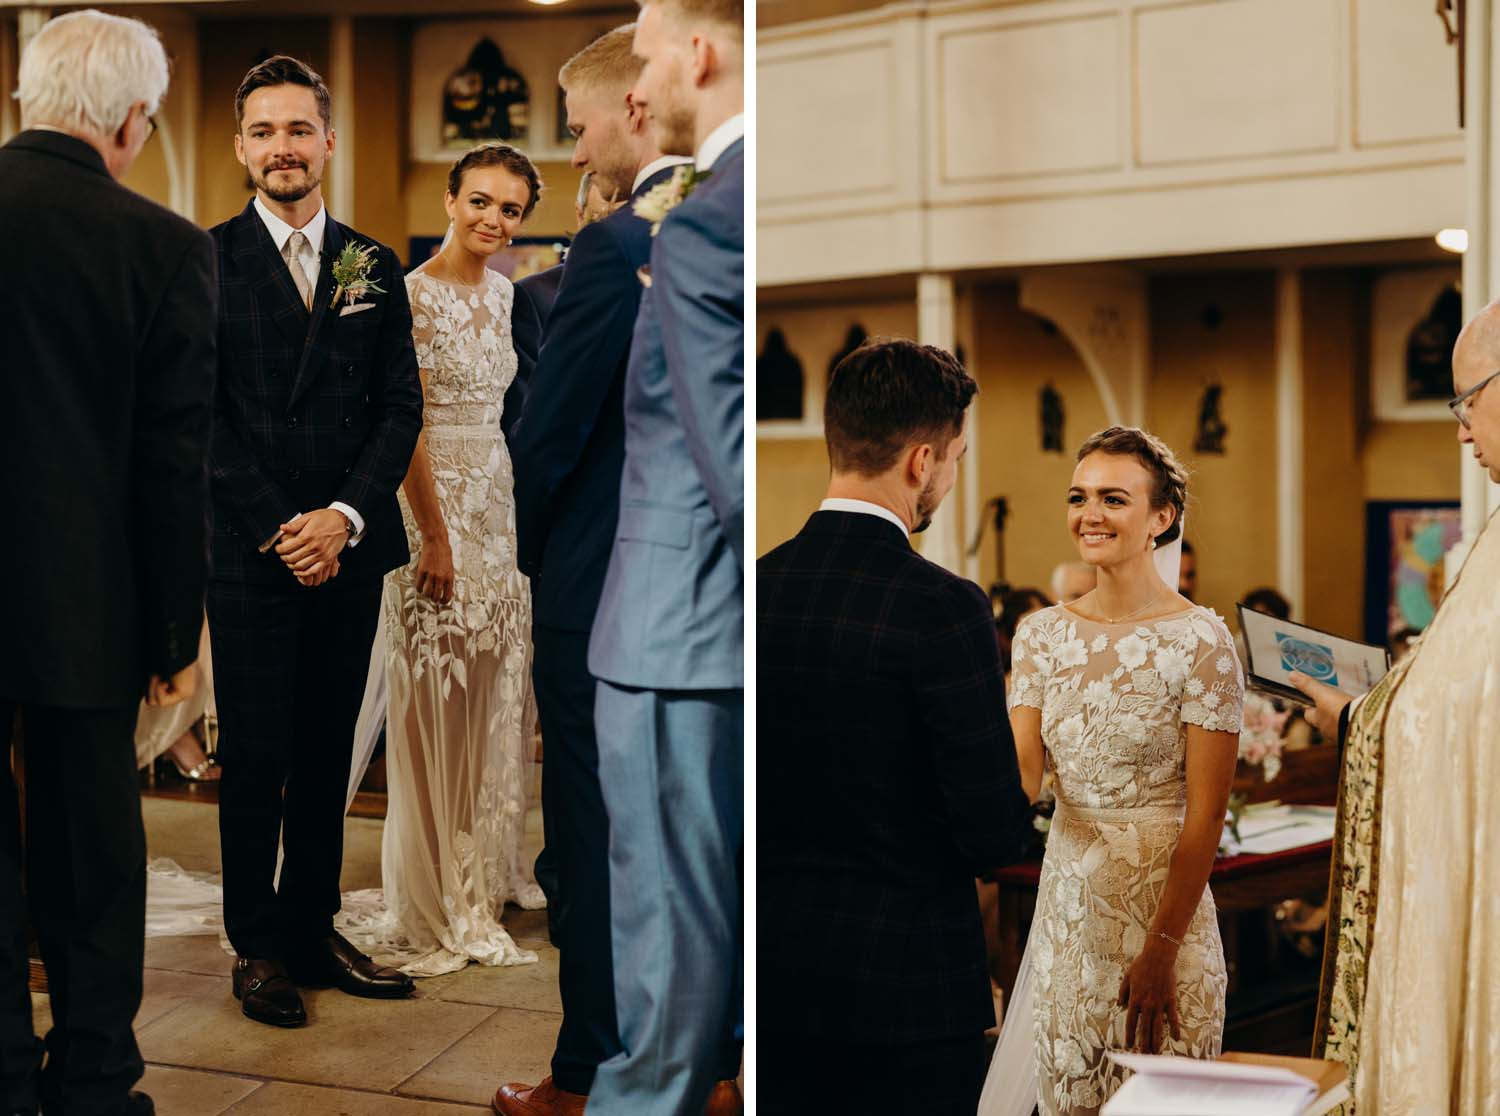 Bride and groom stare at each other